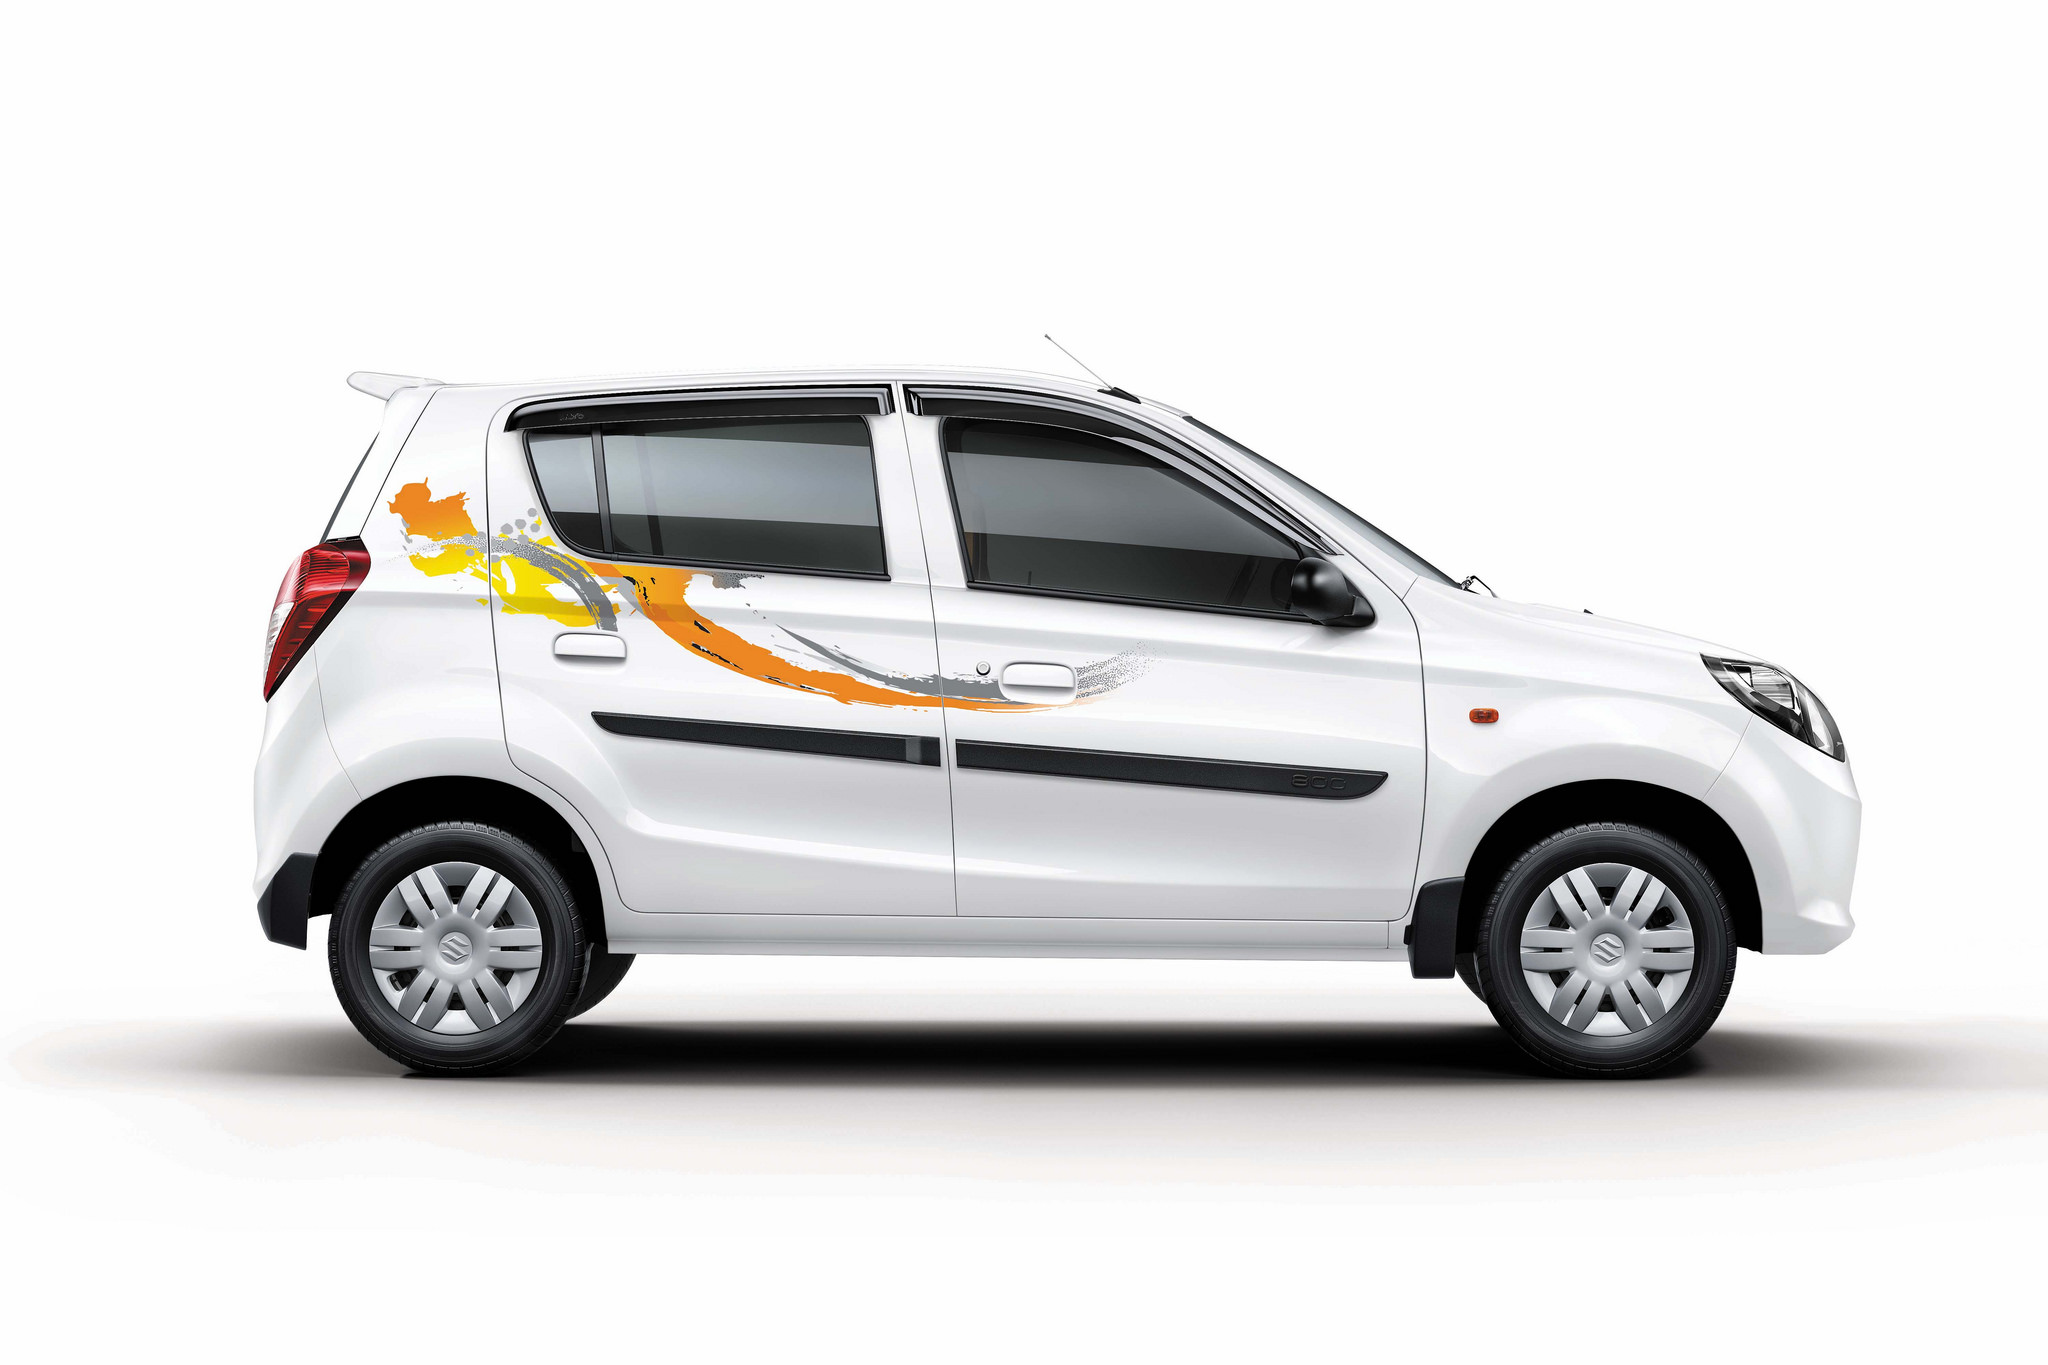 Maruti alto 800 onam edition launched in kerala only